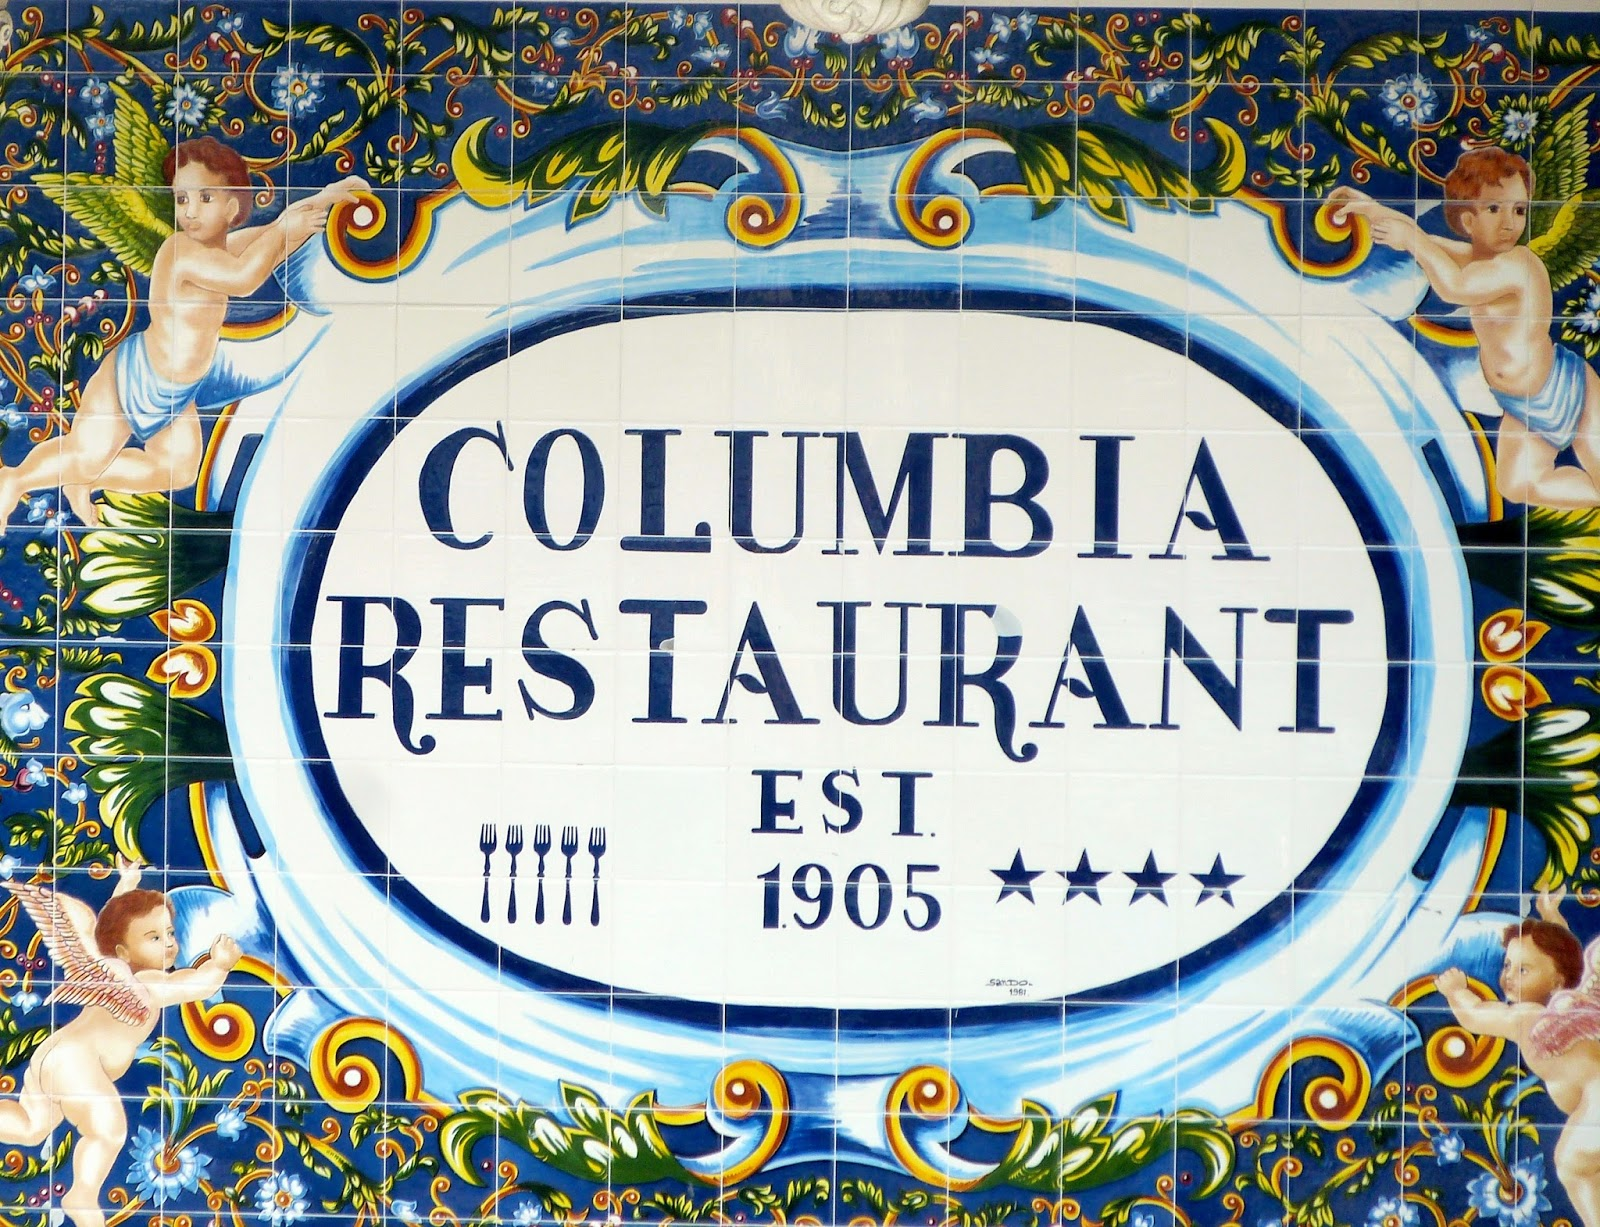 History, Flamenco, and Good Eats at Florida's Oldest Restaurant: A Review of The Columbia, Ybor City, Florida | CosmosMariners.com